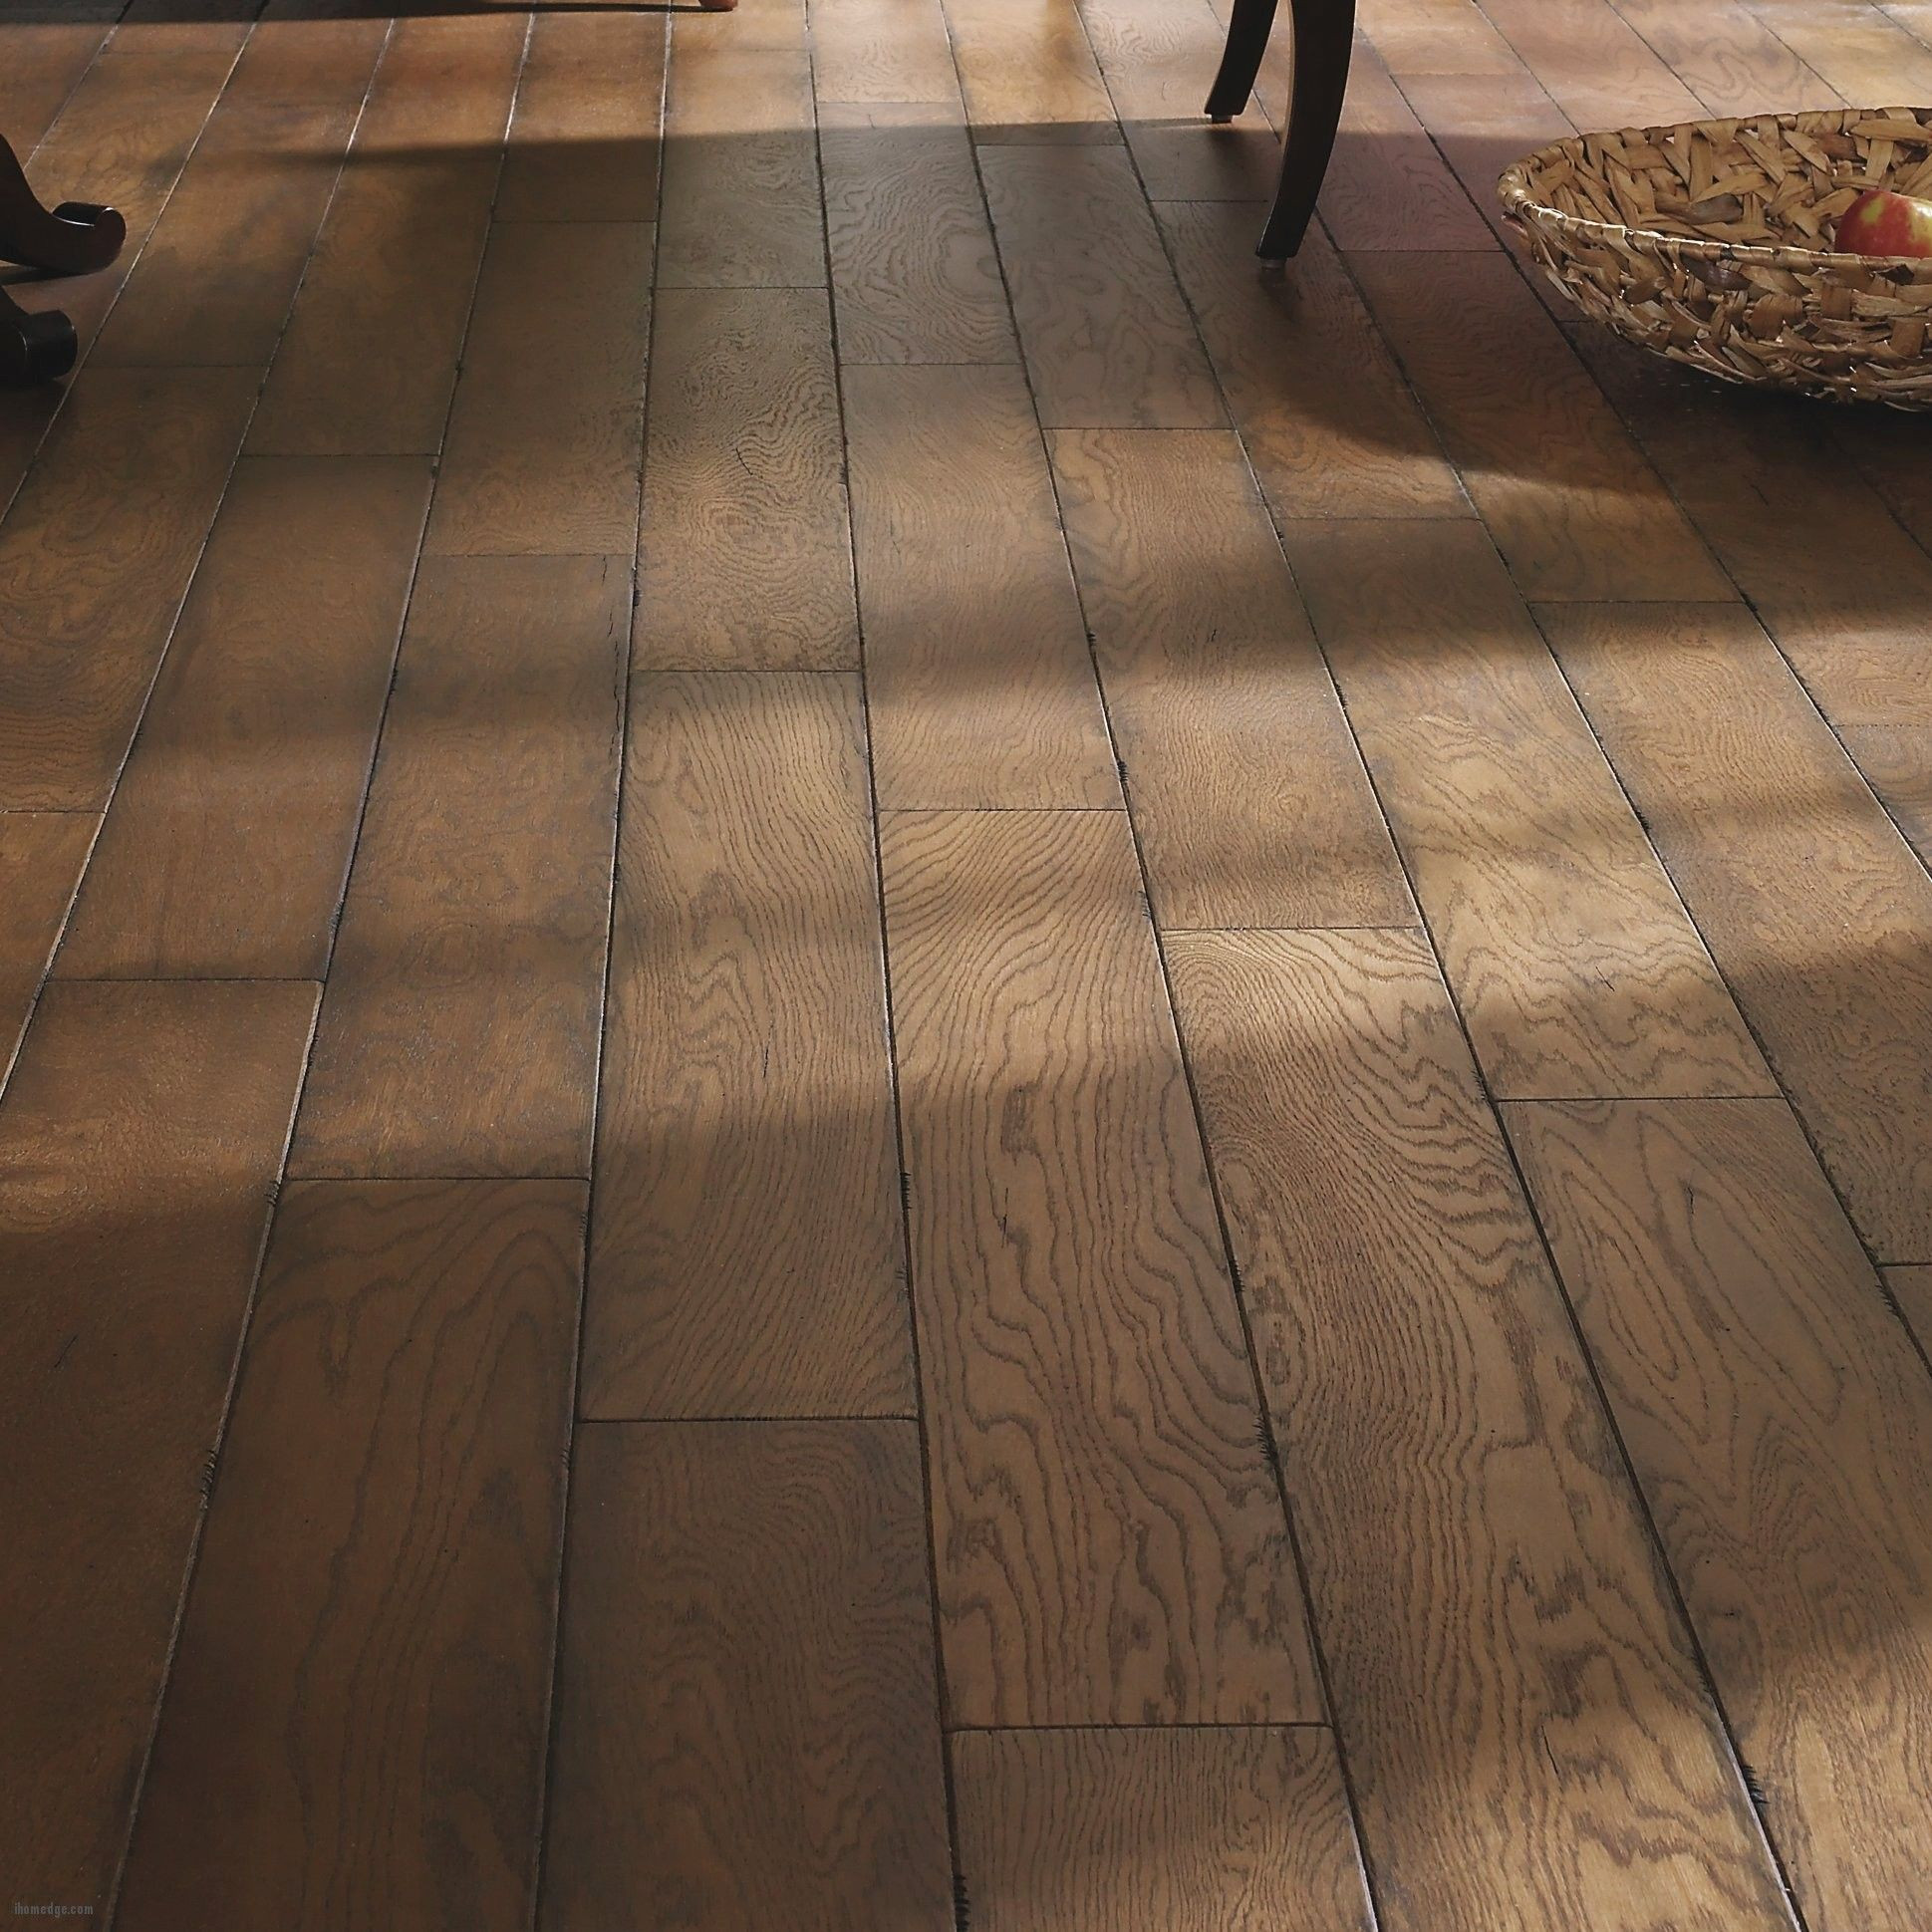 best hardwood floor for radiant heat of solid oak flooring cherry solid wood flooring with radiant heat pertaining to cool lovely white oak hardwood flooring easoon usa 5 engineered white oak hardwood flooring in